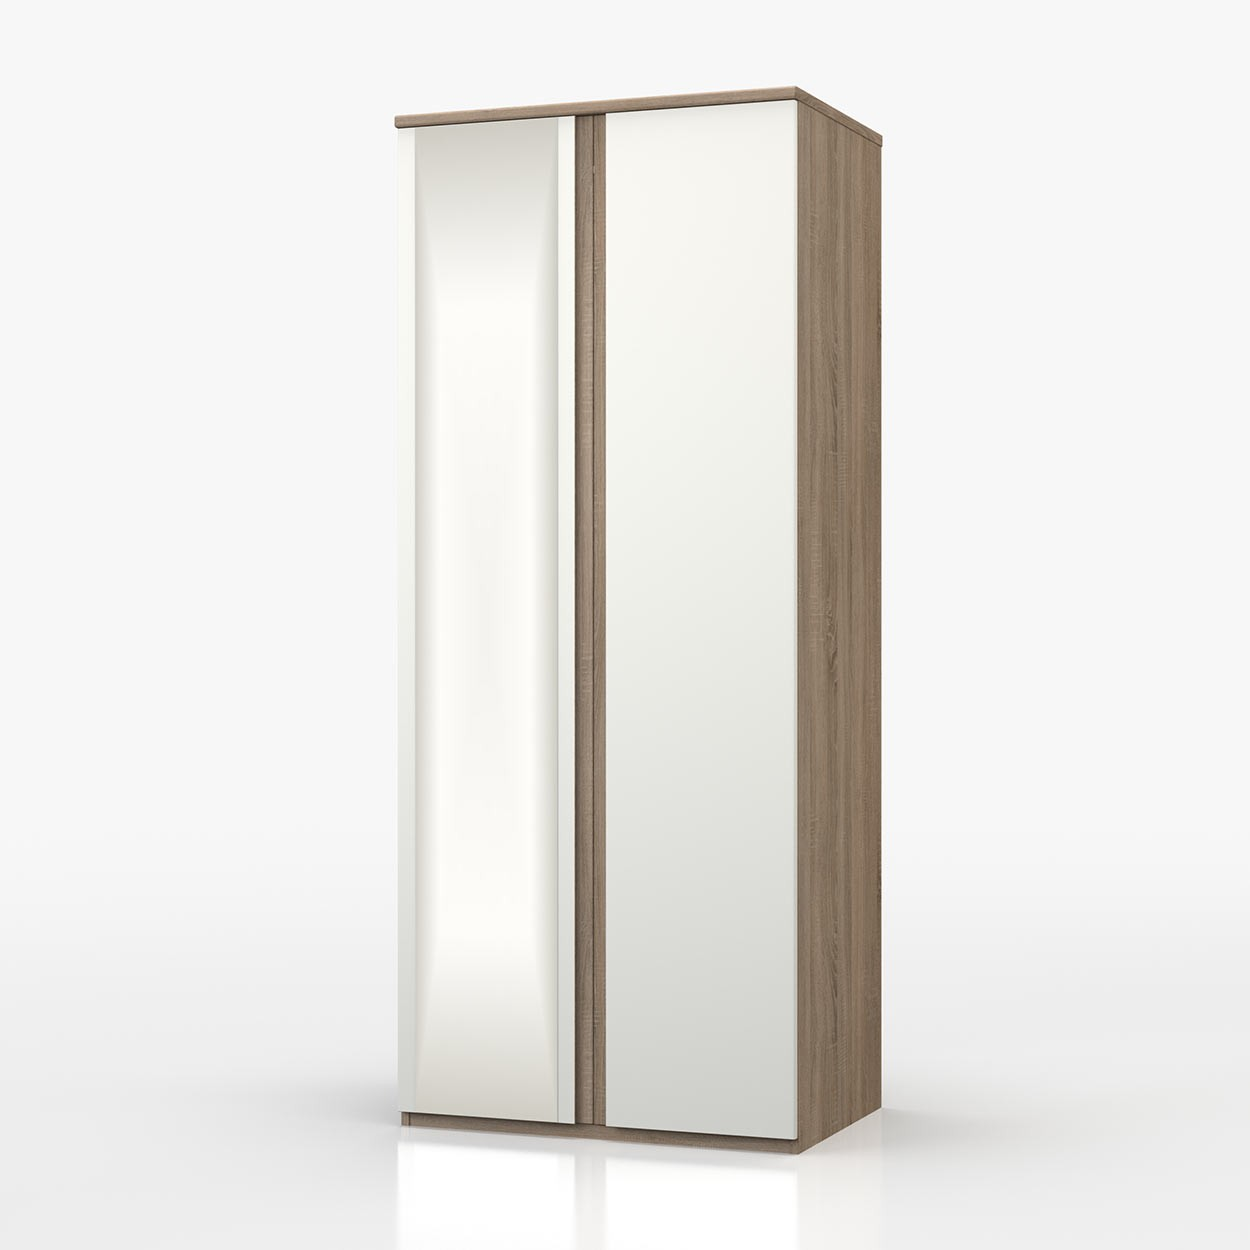 Avenue Truffle Oak And White Gloss 2 Door Robe With Mirror